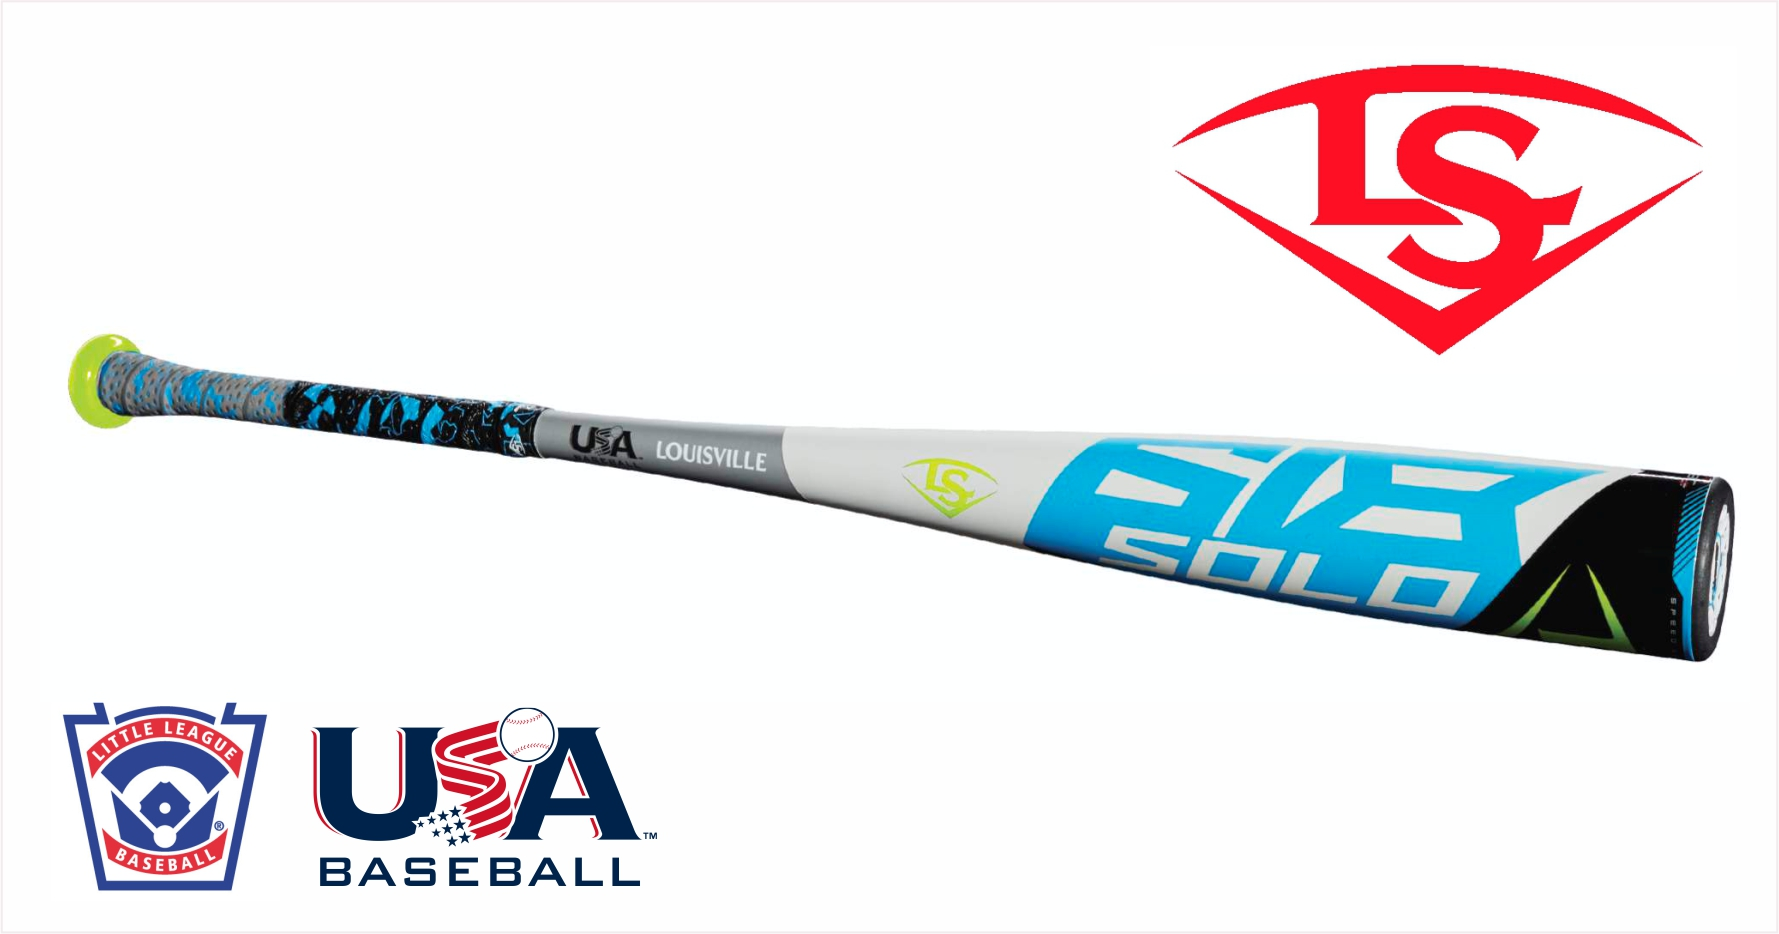 New Louisville Solo 618 WTLUBS618B11 31 20 USA Youth Baseball Bat 2 5 8 by Louisville Slugger